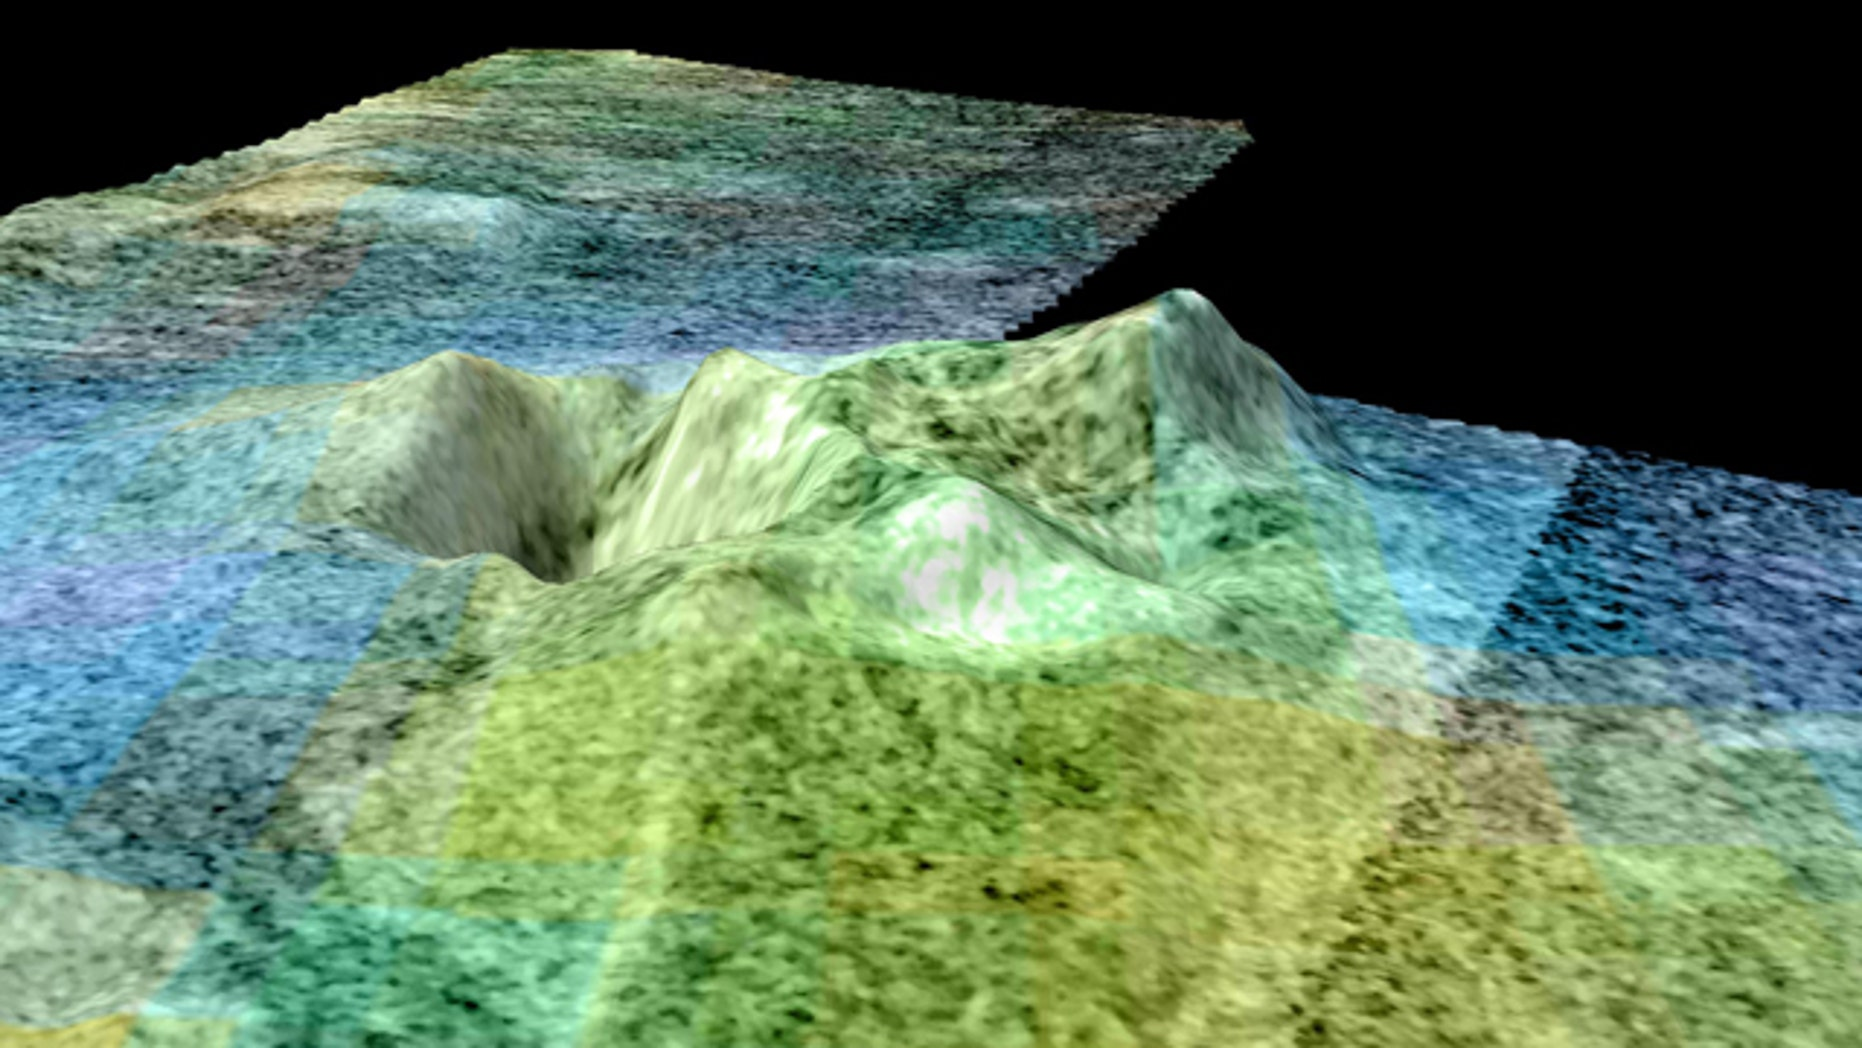 This image is based on data from NASA's Cassini spacecraft and shows a flyover of an area of Saturn's moon Titan known as Sotra Facula. Scientists believe Sotra is the best case for an ice volcano -- or cryovolcano -- region on Titan.